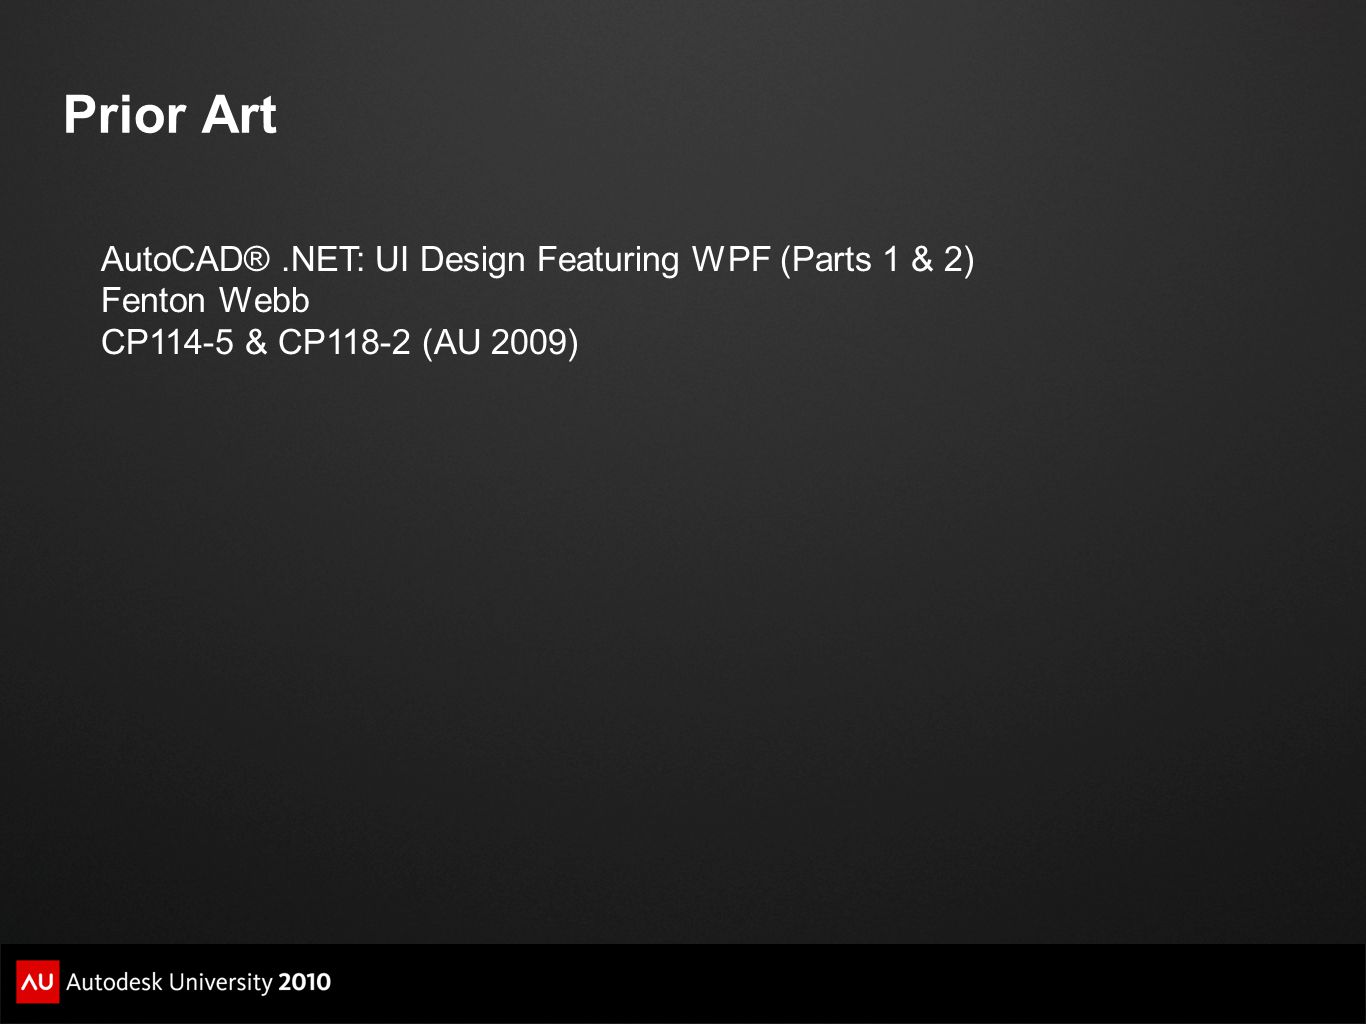 Prior Art AutoCAD® .NET: UI Design Featuring WPF (Parts 1 & 2)